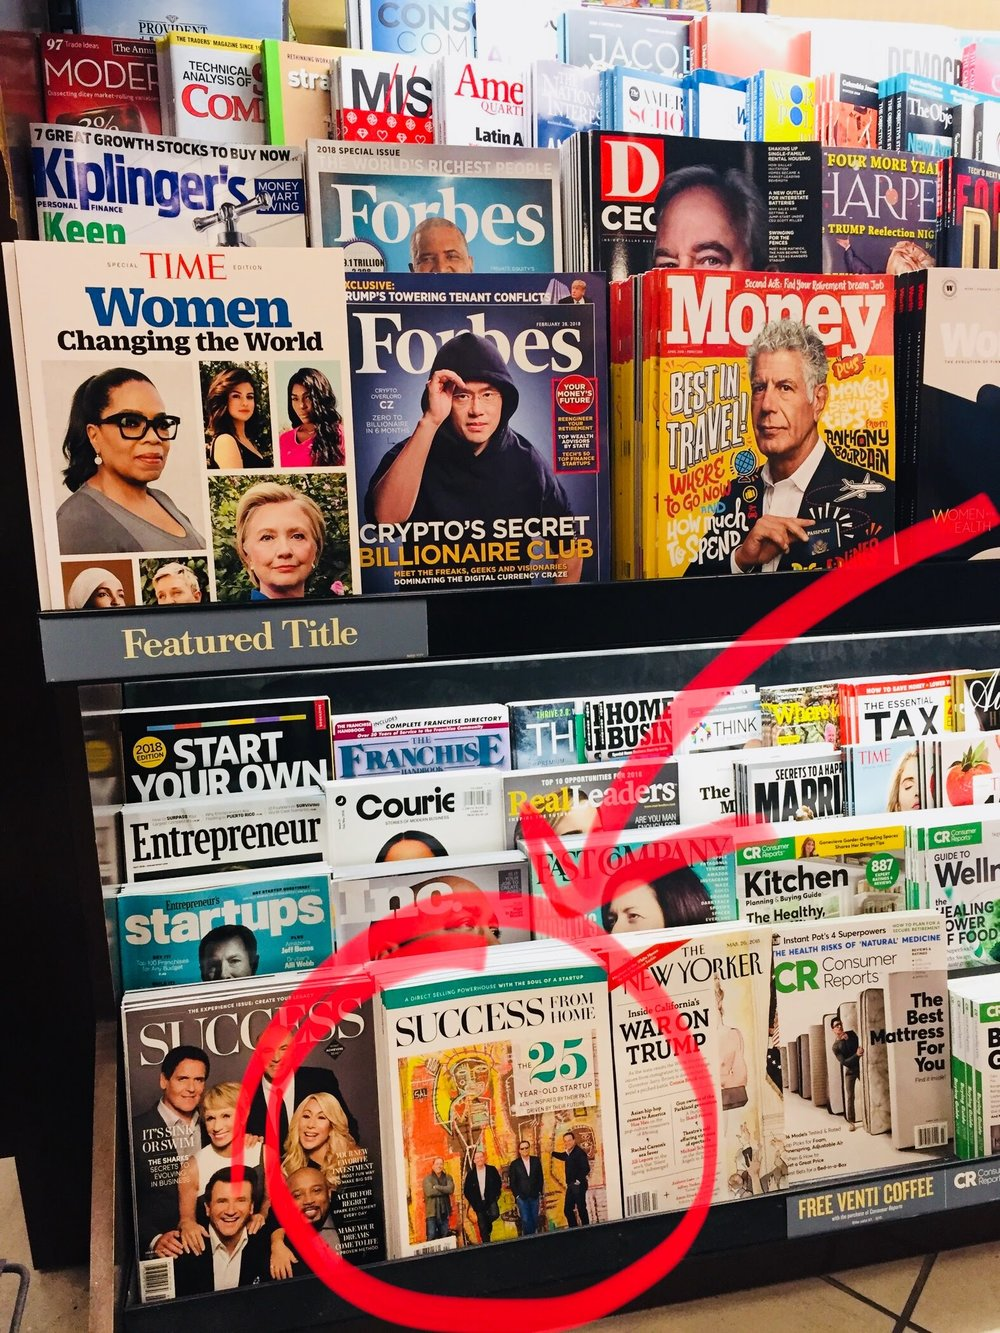 CHECK OUT MY COVER STORY ON THE FRONT ROW OF NEWSSTANDS!